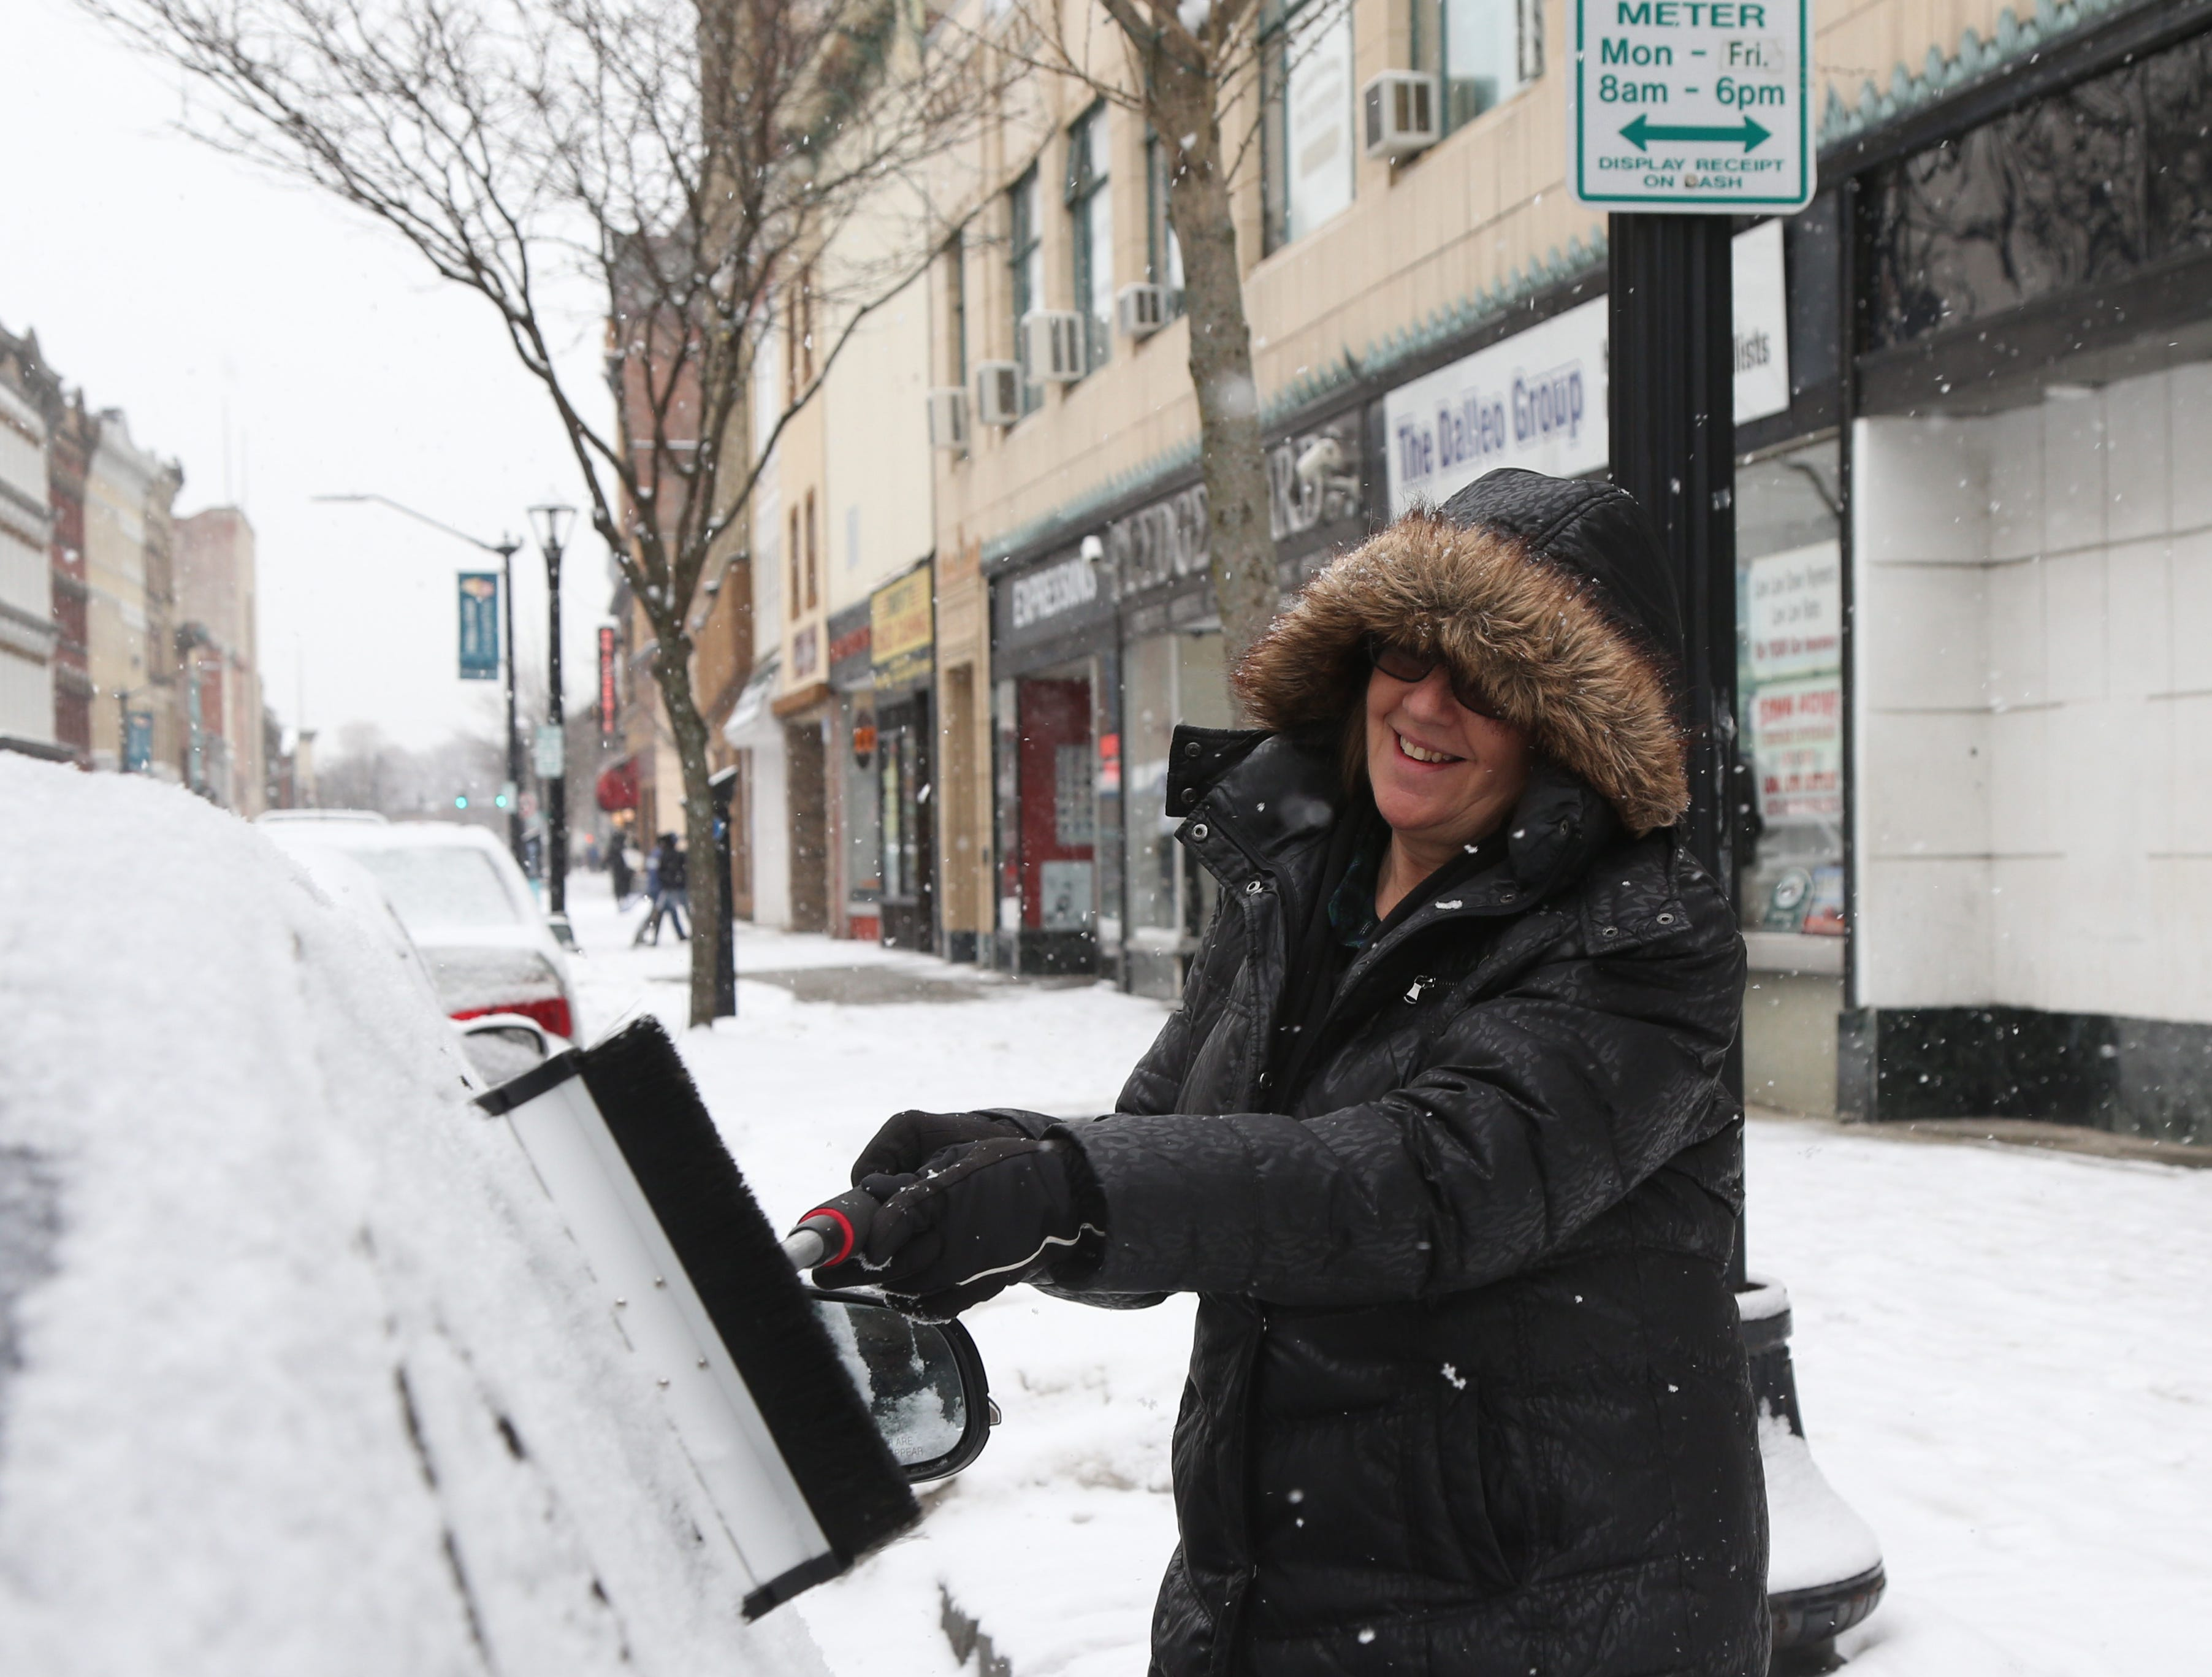 Eileen Cohen of Wappingers Falls clears the accumulated snow from her car before leaving Main Street in the City of Poughkeepsie on January 29, 2019.